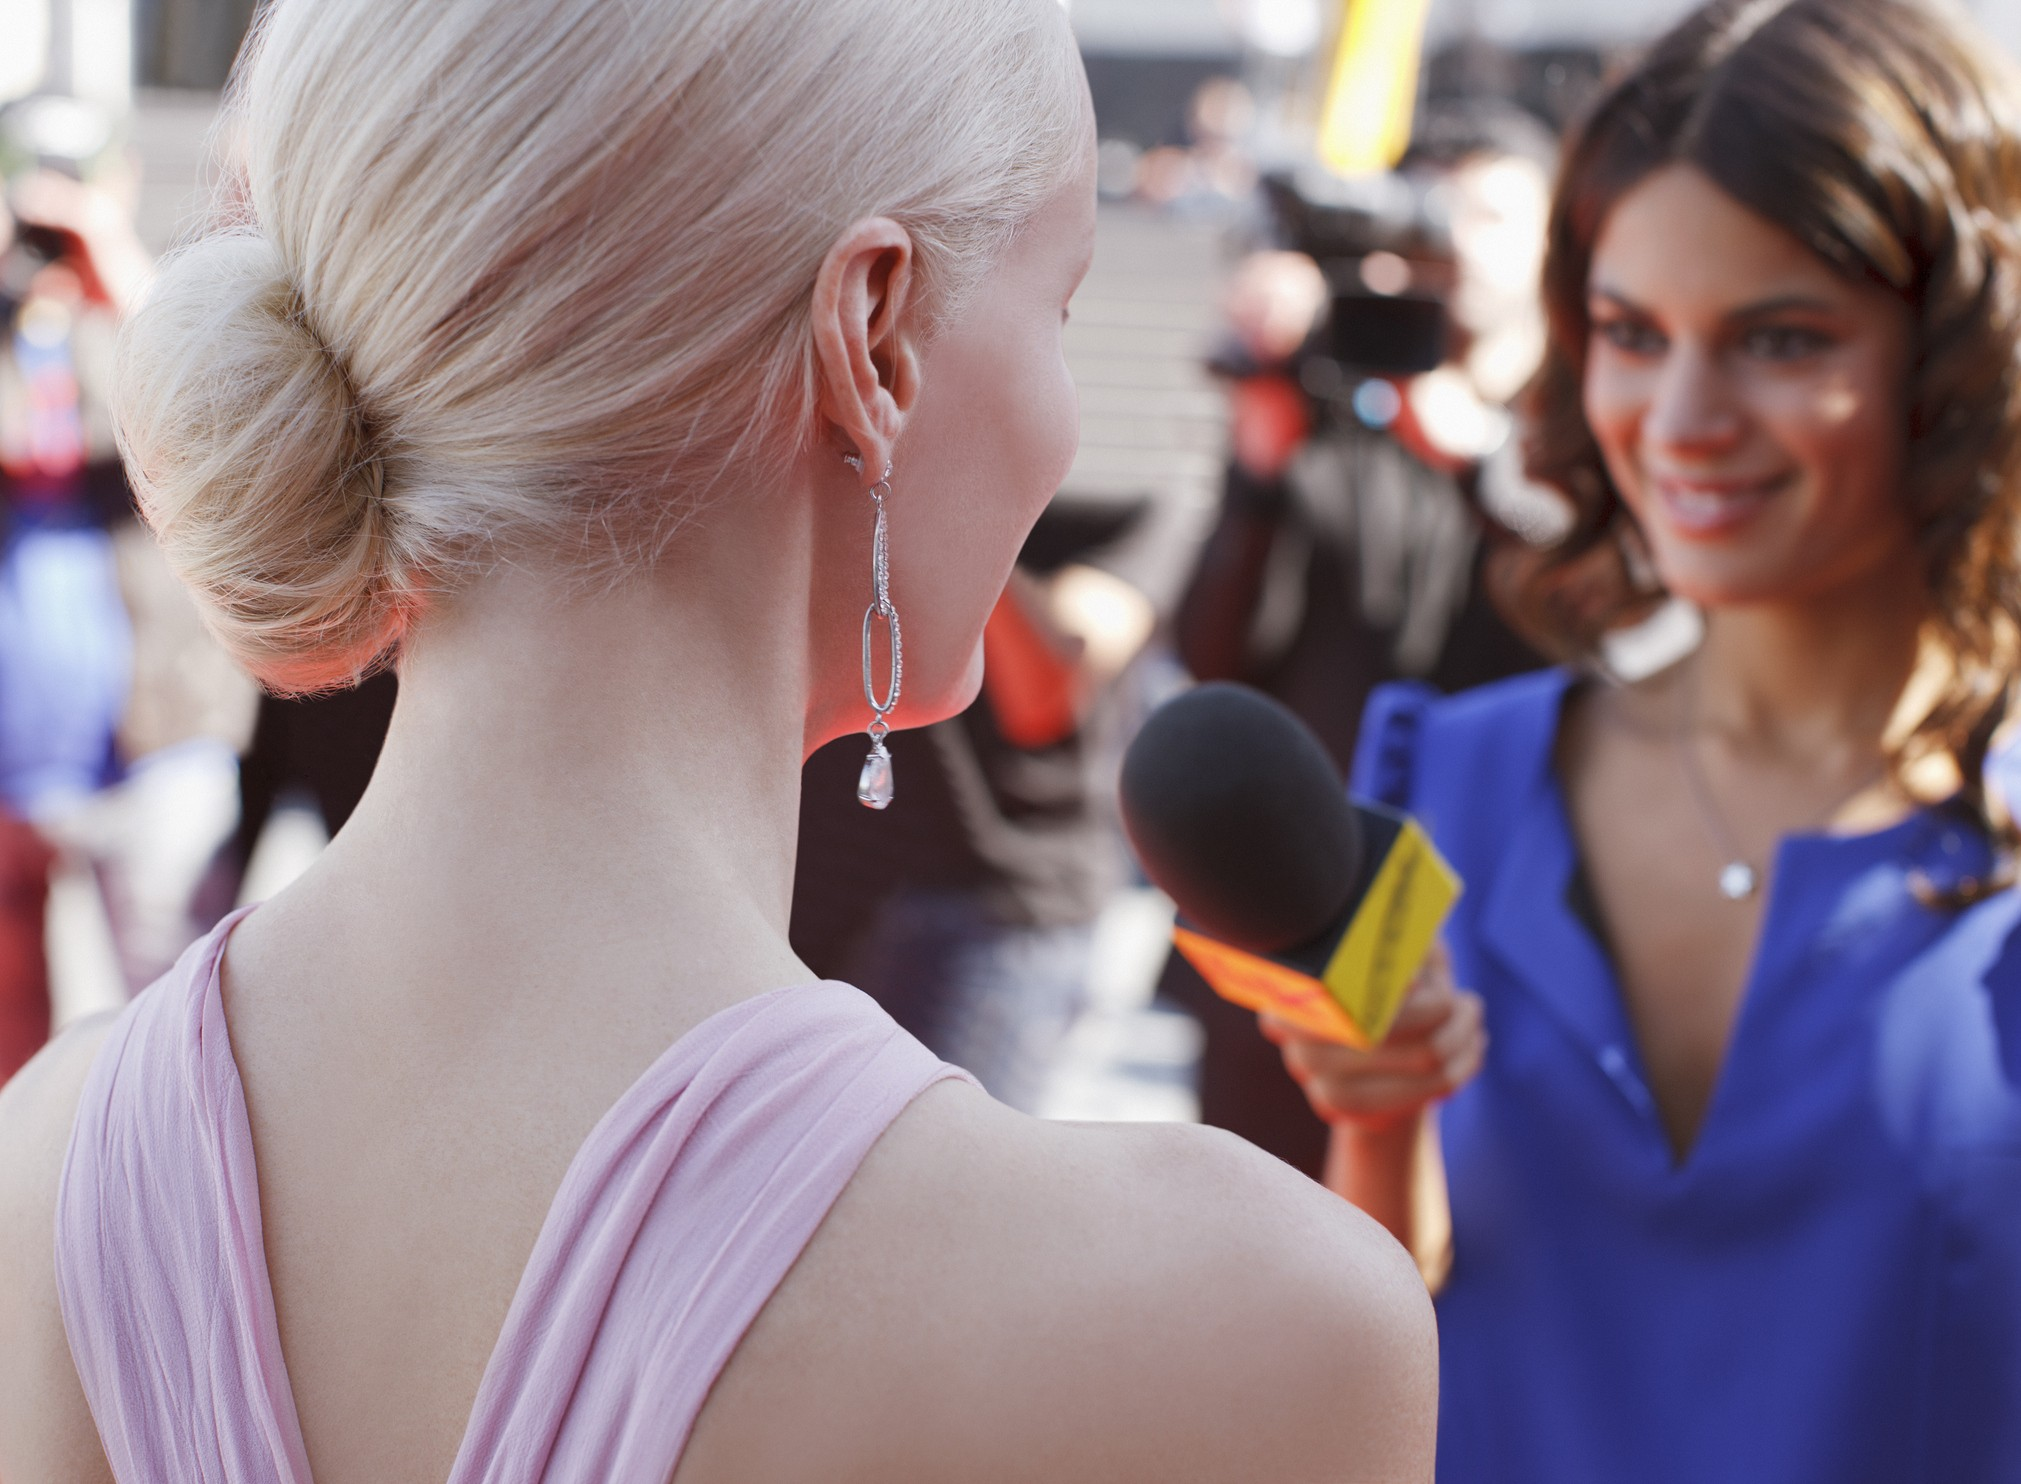 Celebrity speaking to reporter on red carpet